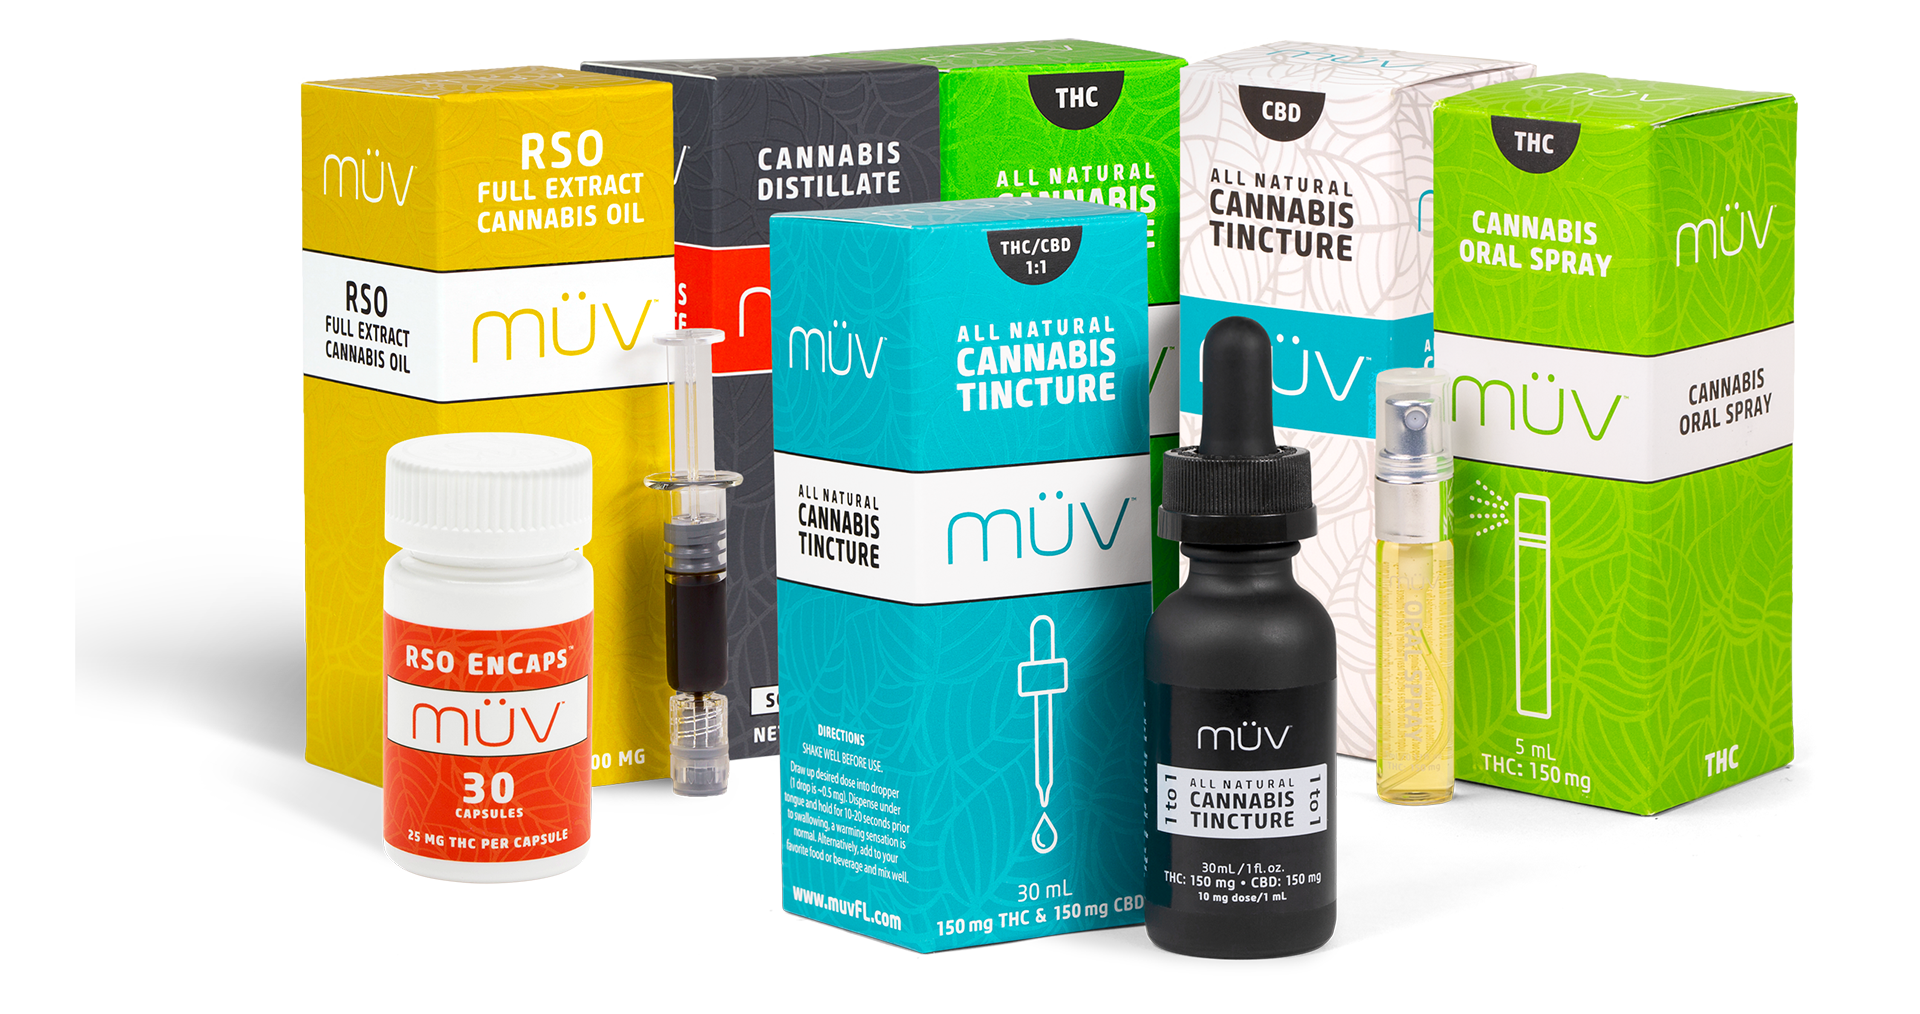 Cannabis Oral Products